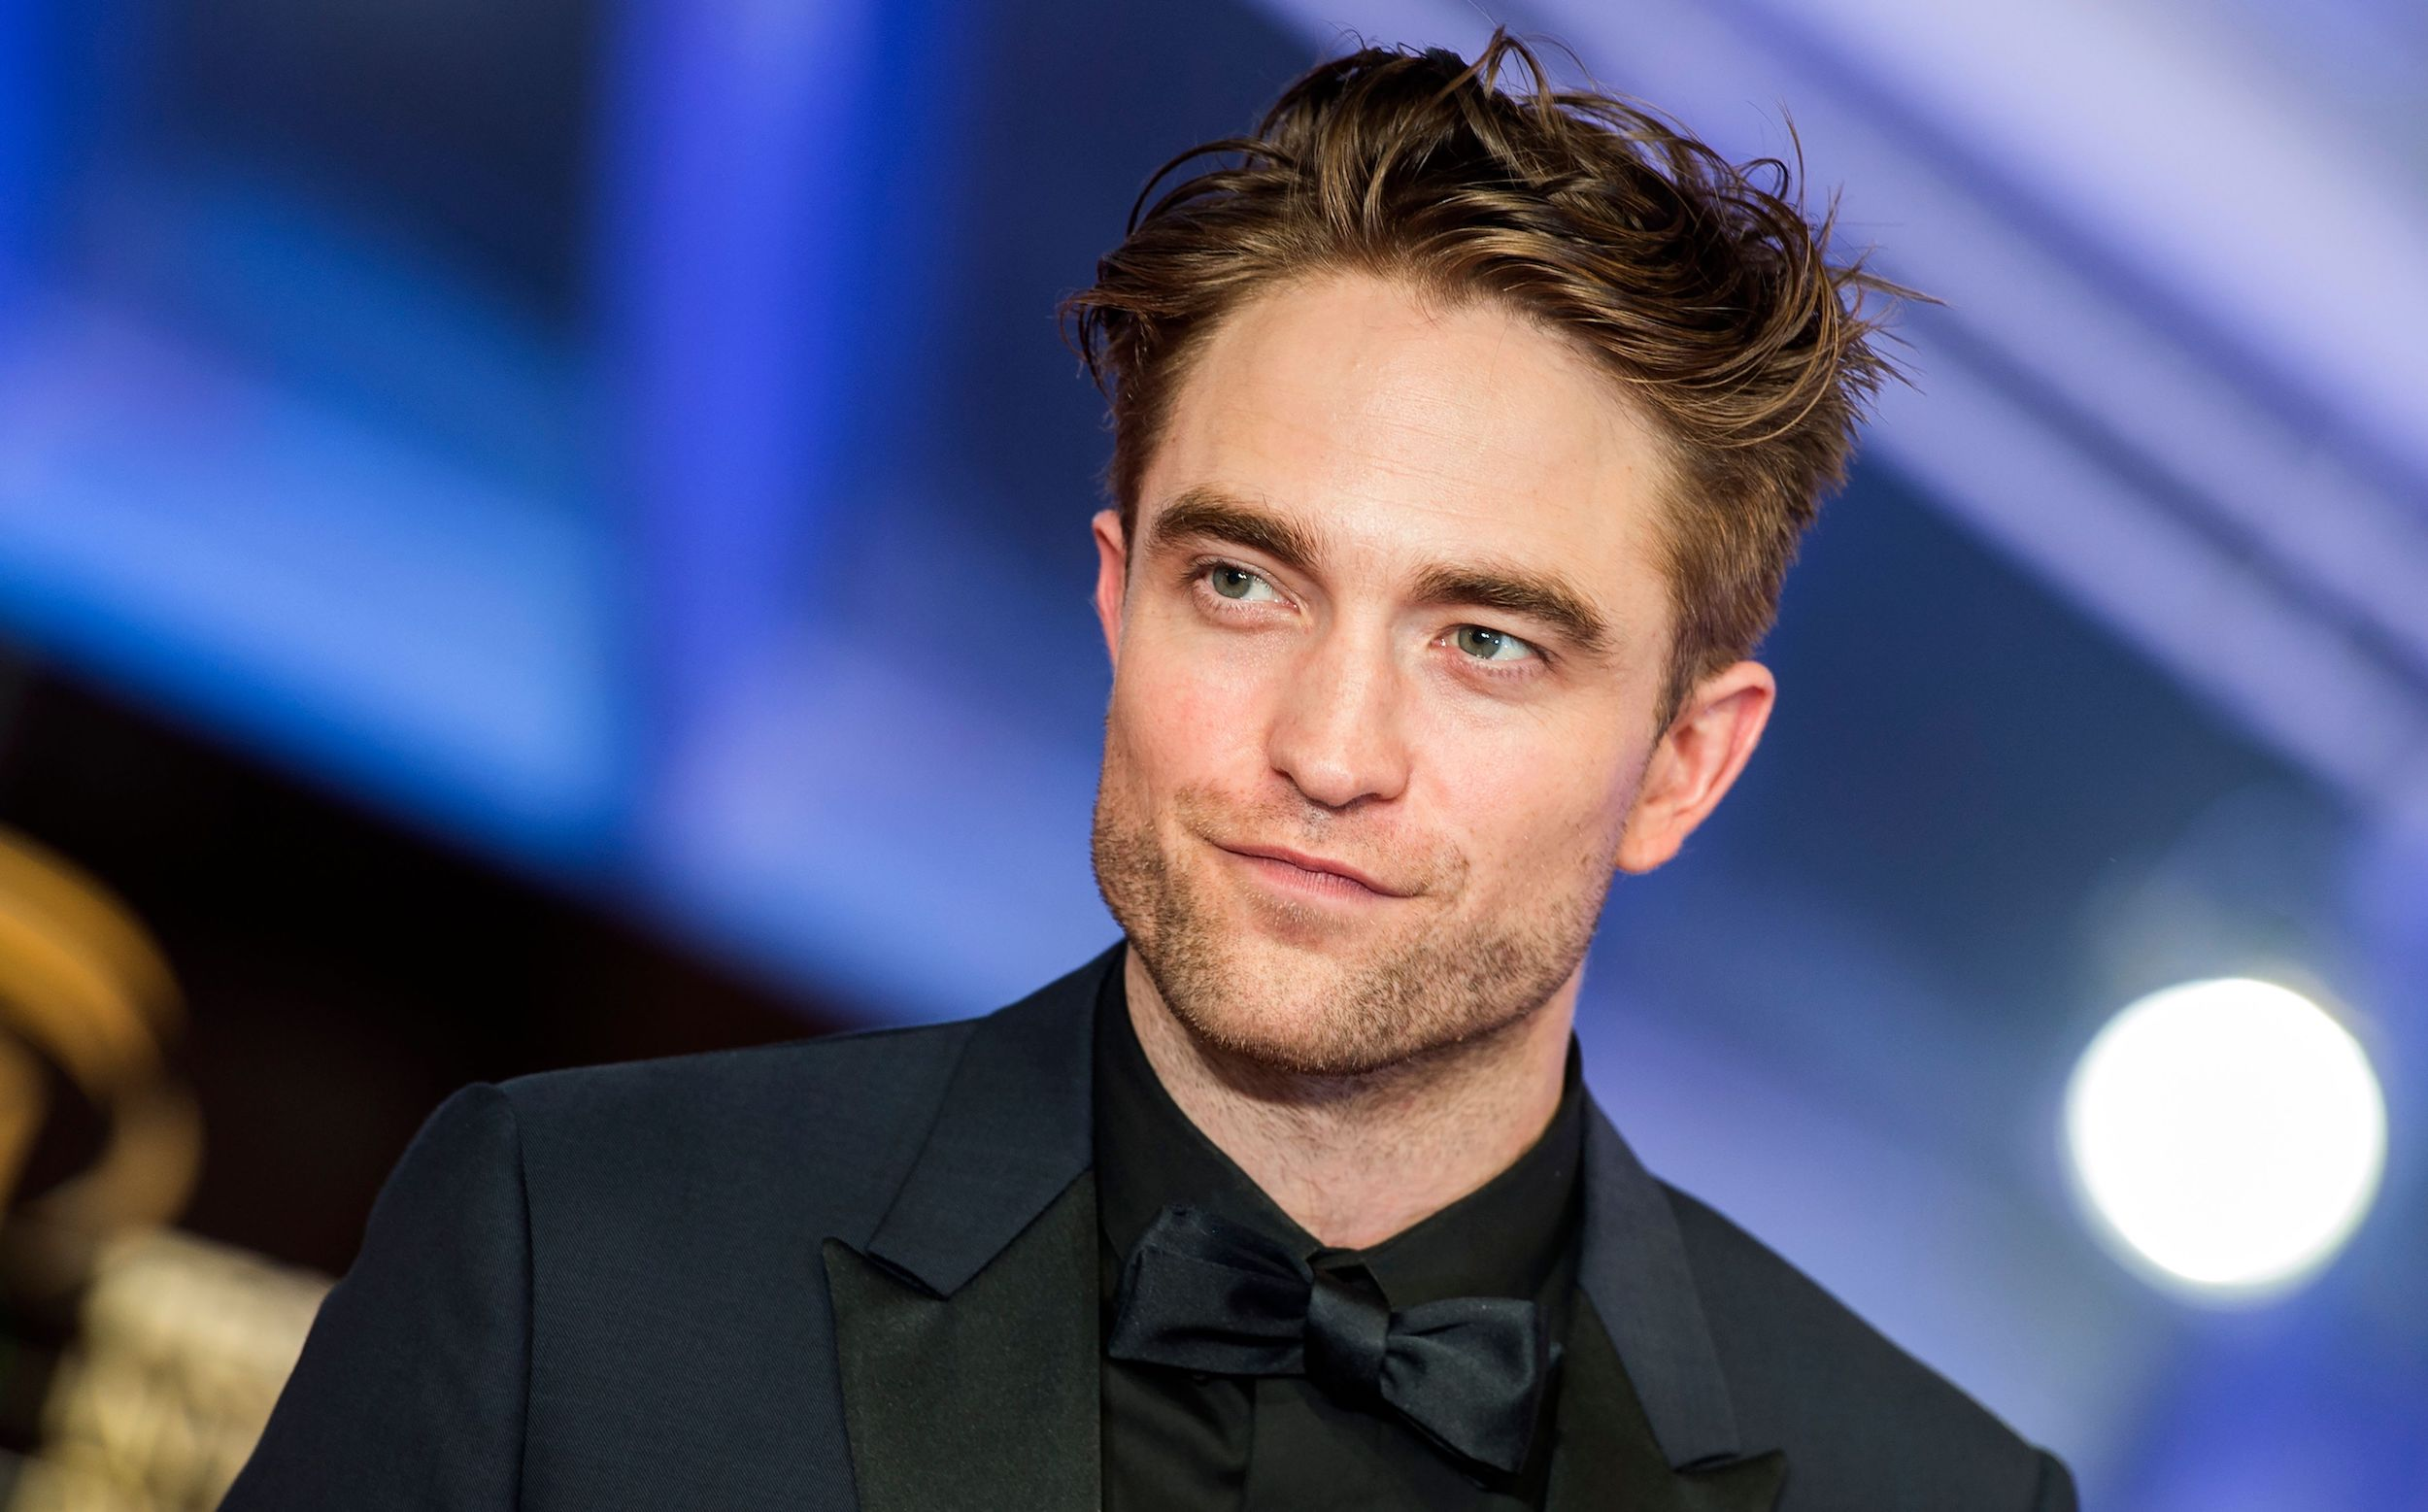 Robert Pattinson will reportedly star in The Batman